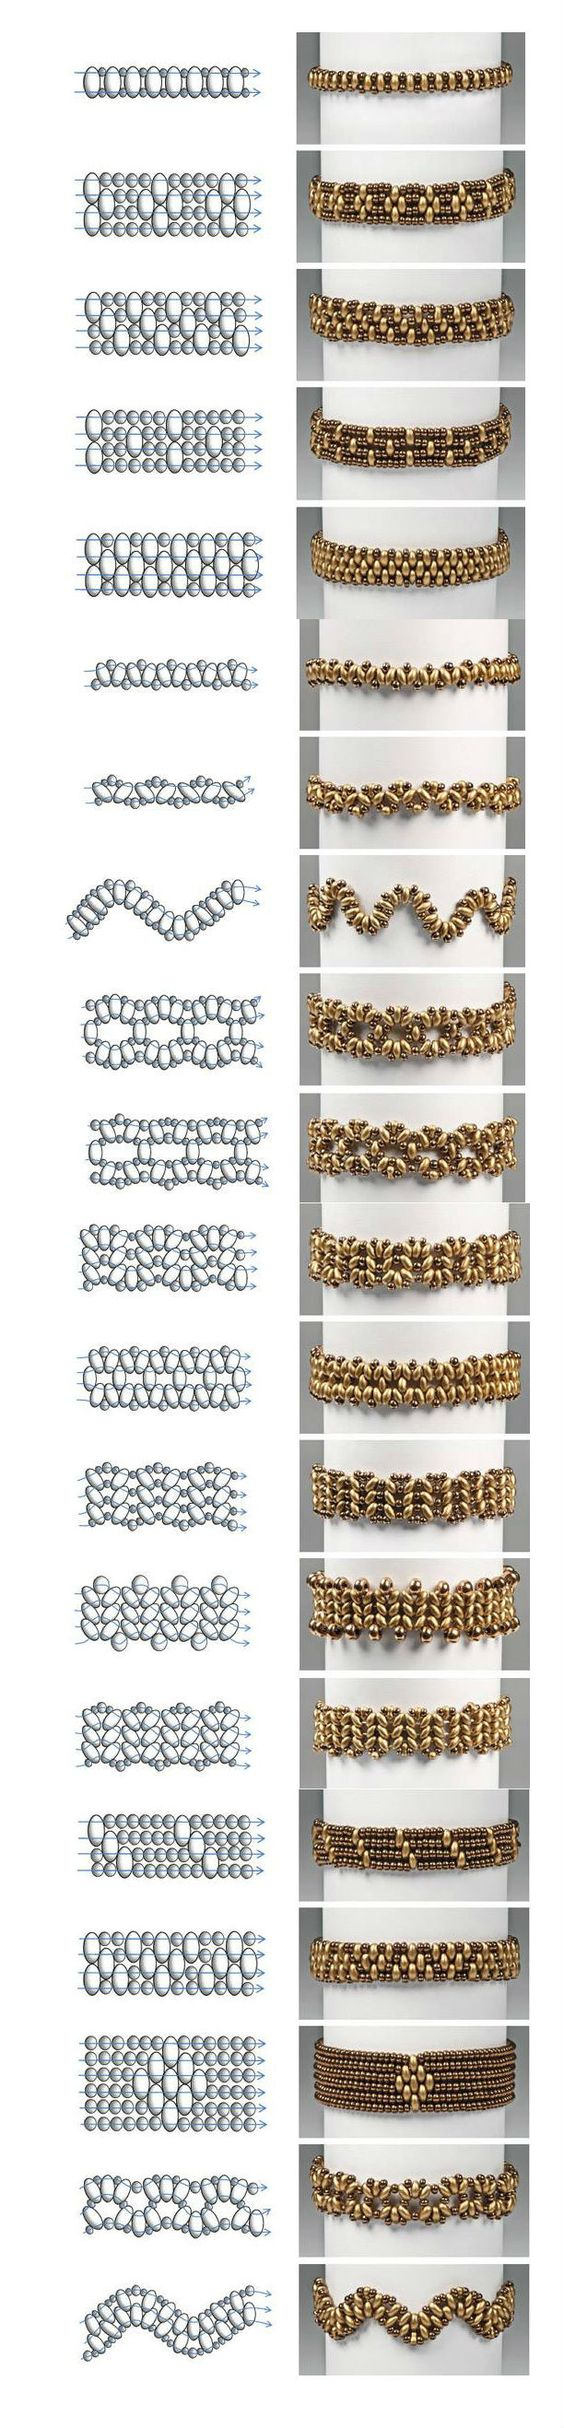 Preciosa Projects - Twin Bracelets  Easy and Simple Pattern featured in Bead-Patterns.com Newsletter!